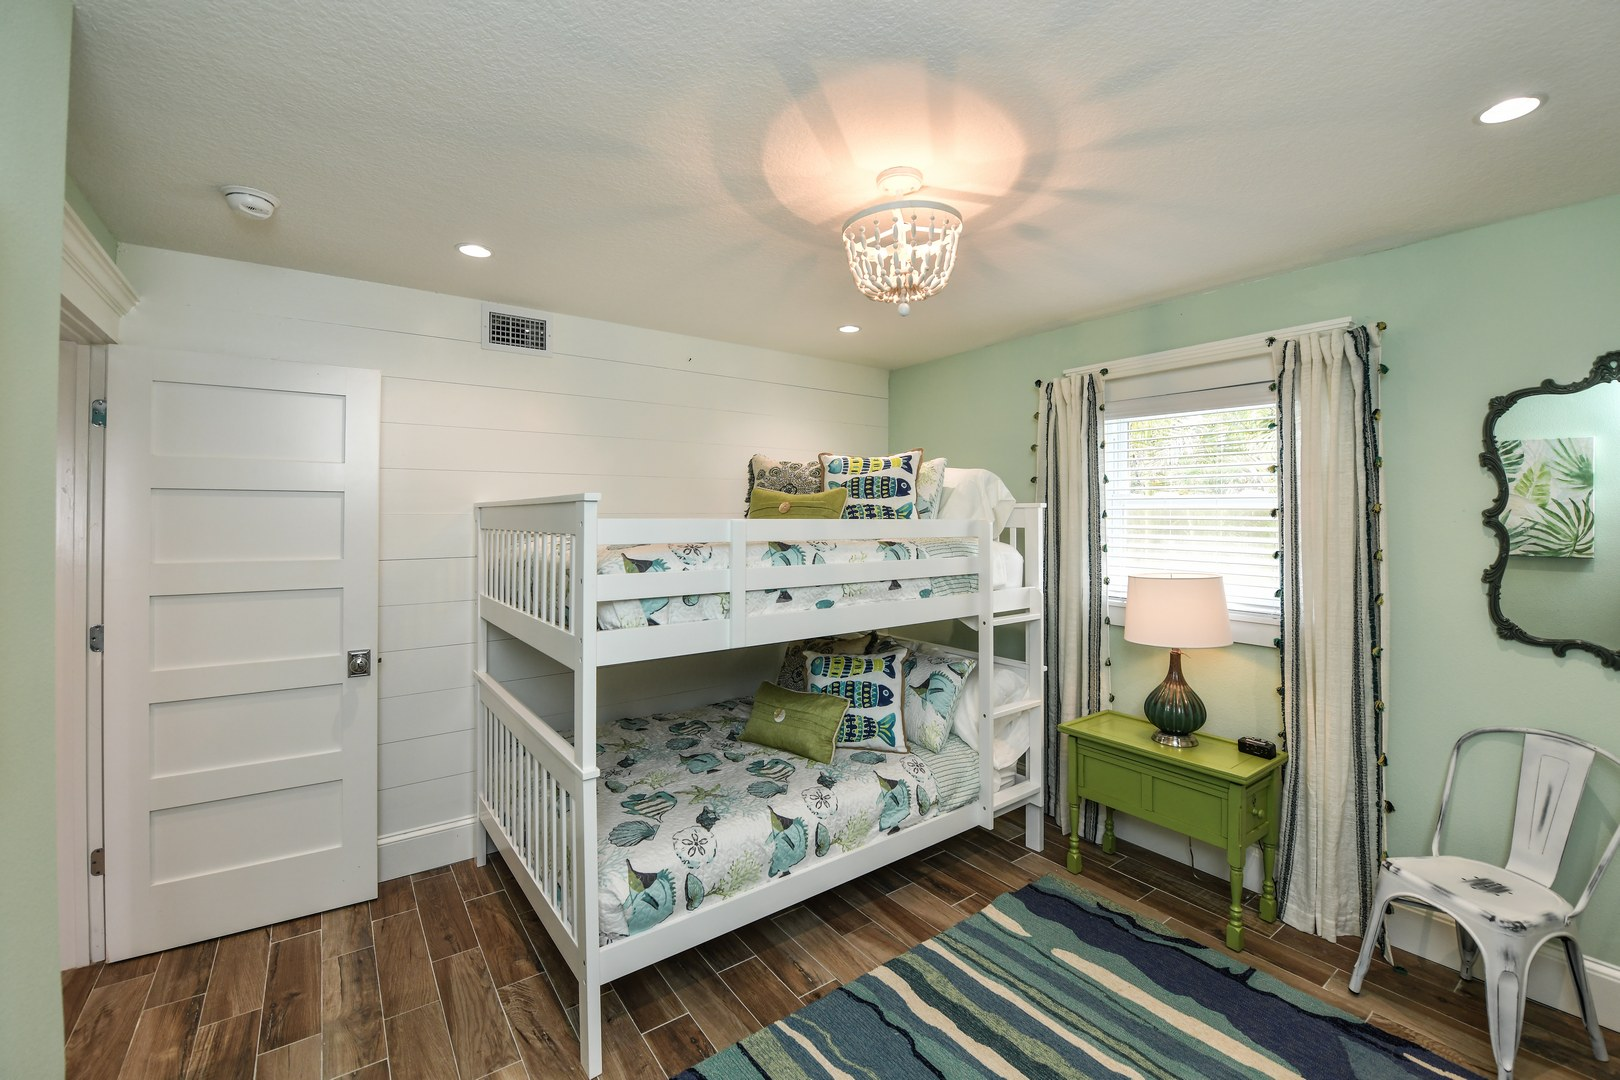 Example bunk bed room